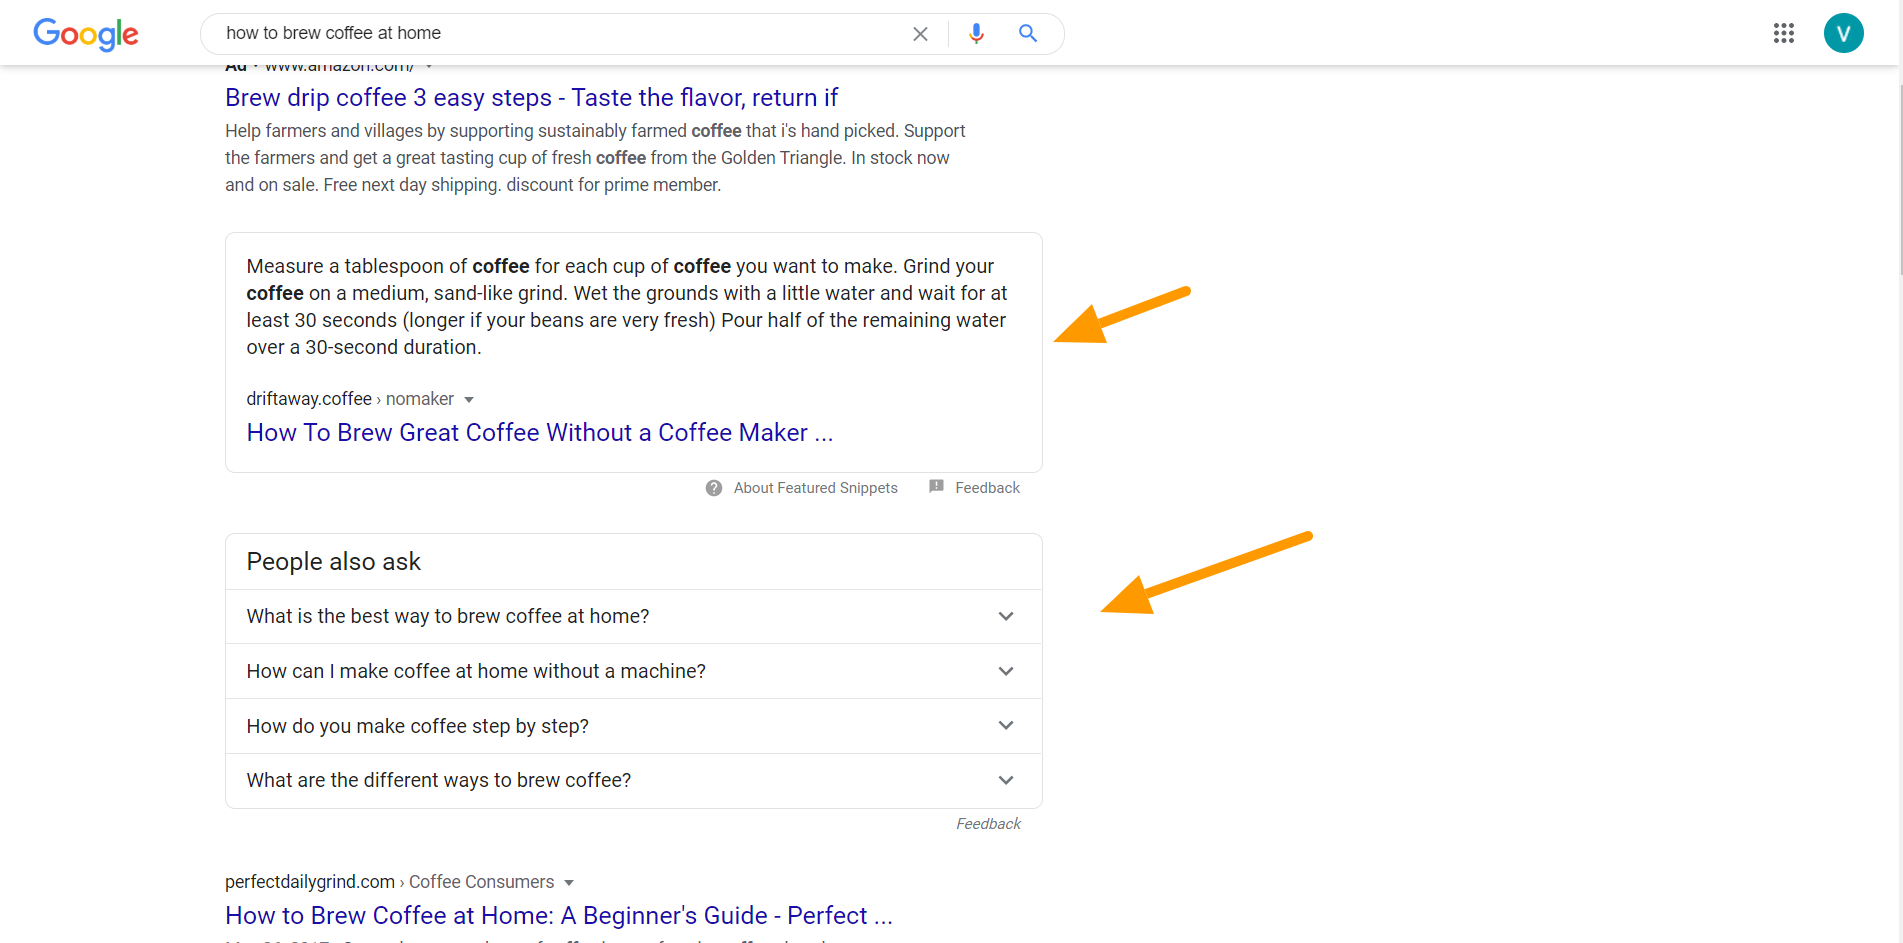 how_to_brew_coffee_at_home_Google_Search